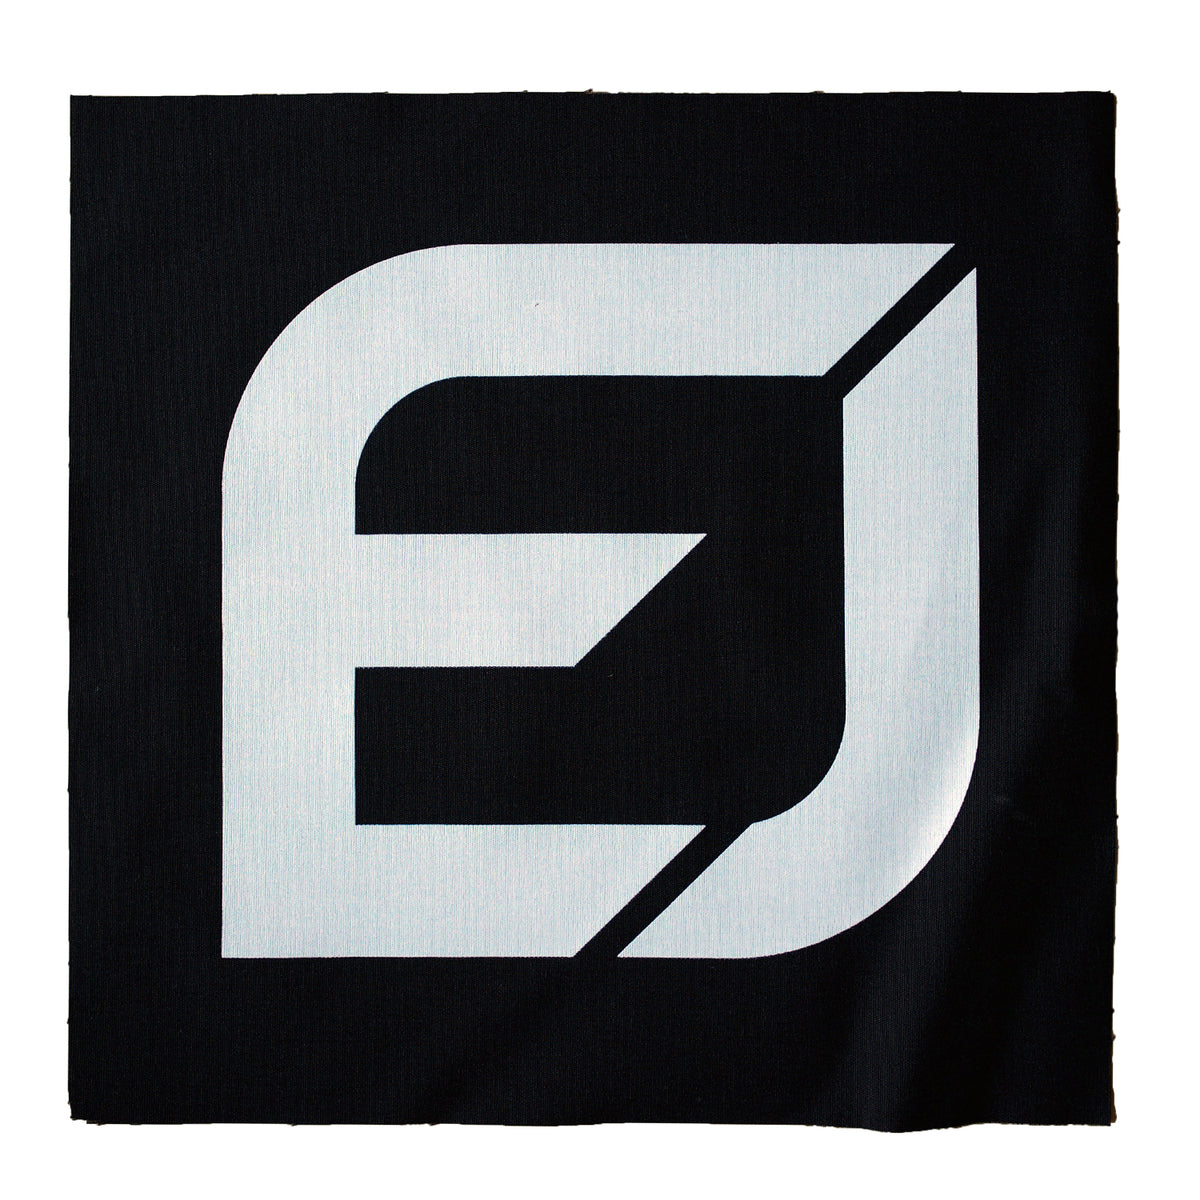 EJ Logo Patch - Black or White - Small